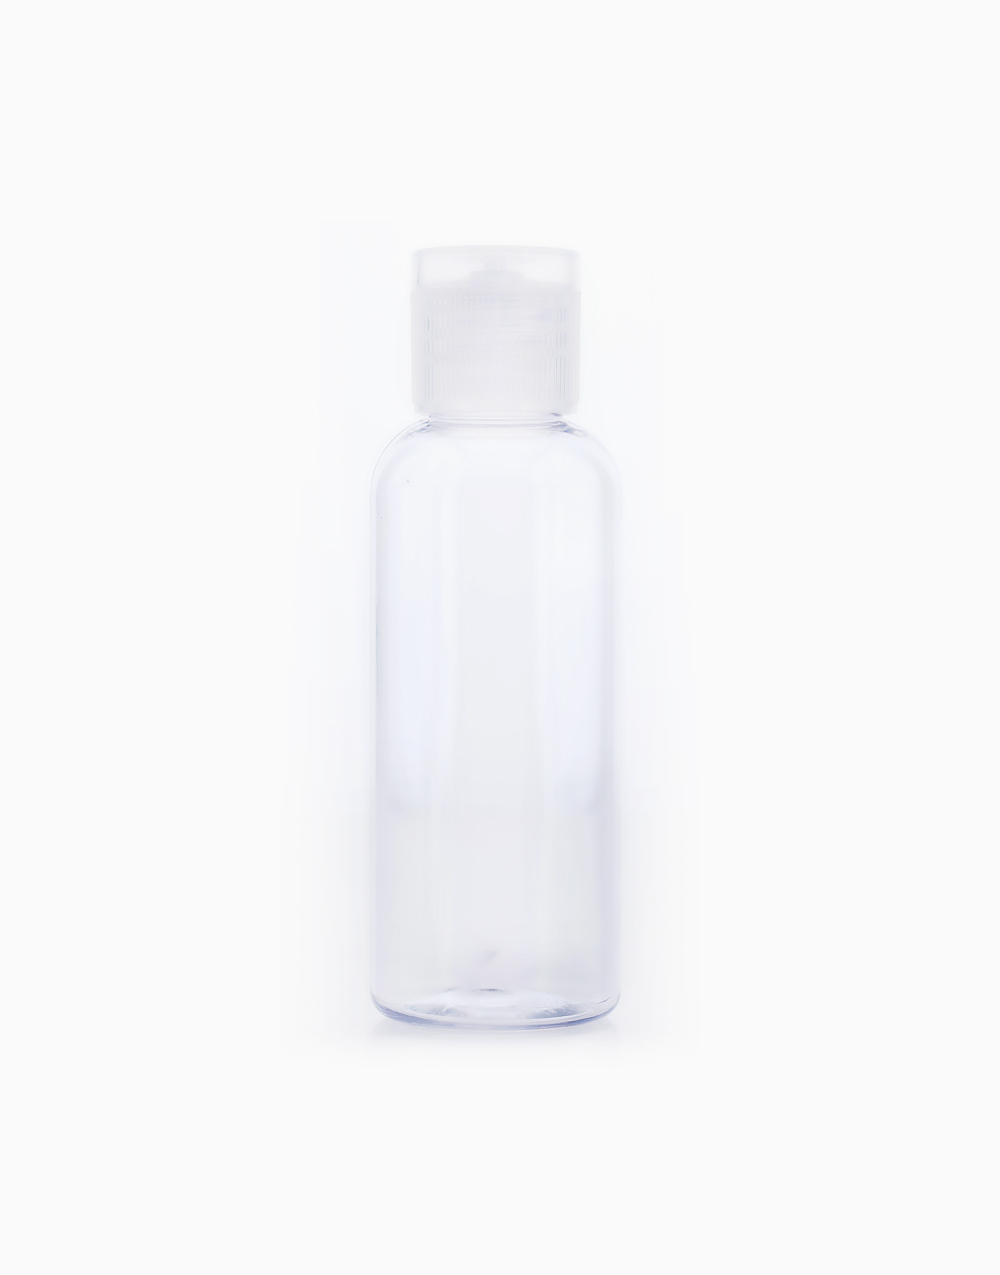 Refillable Empty Bottle (50ml) by Honest Tools